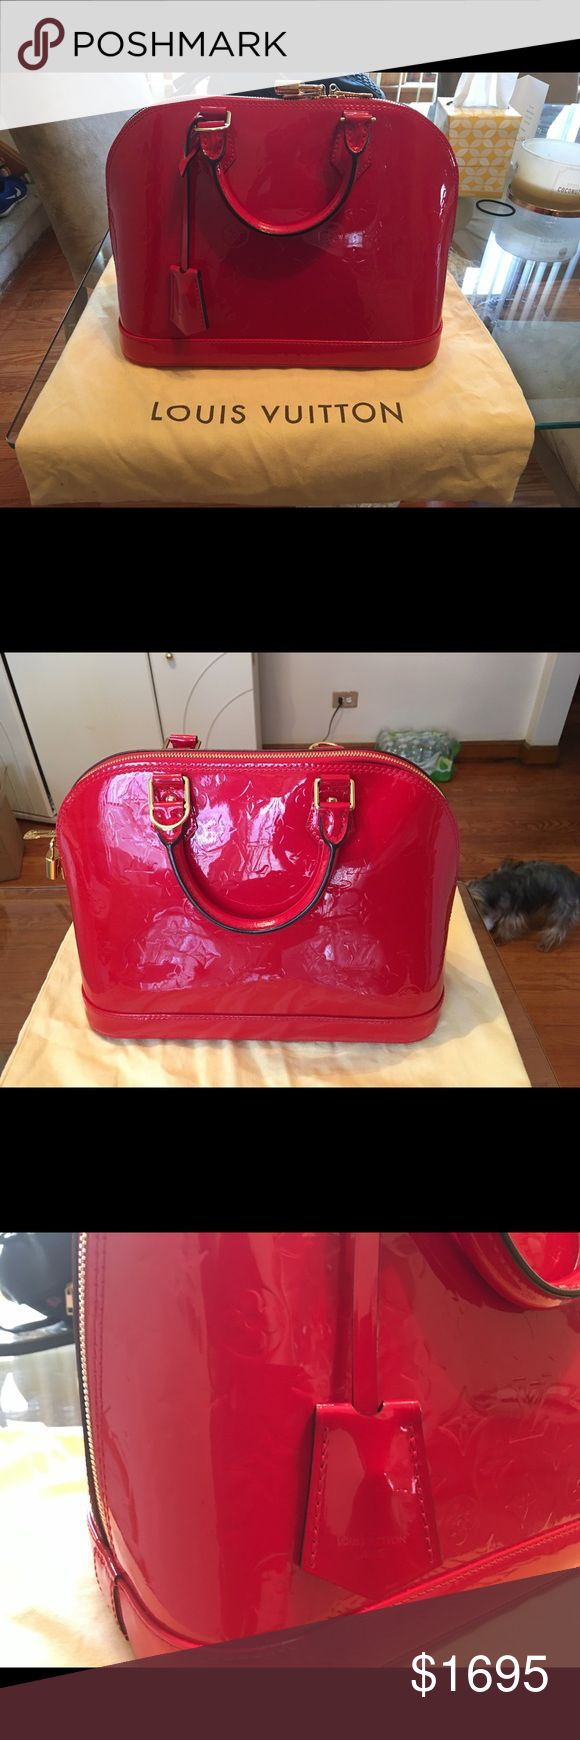 Louis Vuitton Alma PM Handbag Effortlessly stylish and elegant, you will turn heads with this shiny, bright red Monogram Vernis Leather handbag. Beautiful Gold hardware! Keys included (see pics). Worn 2-3 times, comes with dust bag and purse stuffer to hold the shape of the purse. Price is not negotiable on this item! Louis Vuitton Bags Shoulder Bags